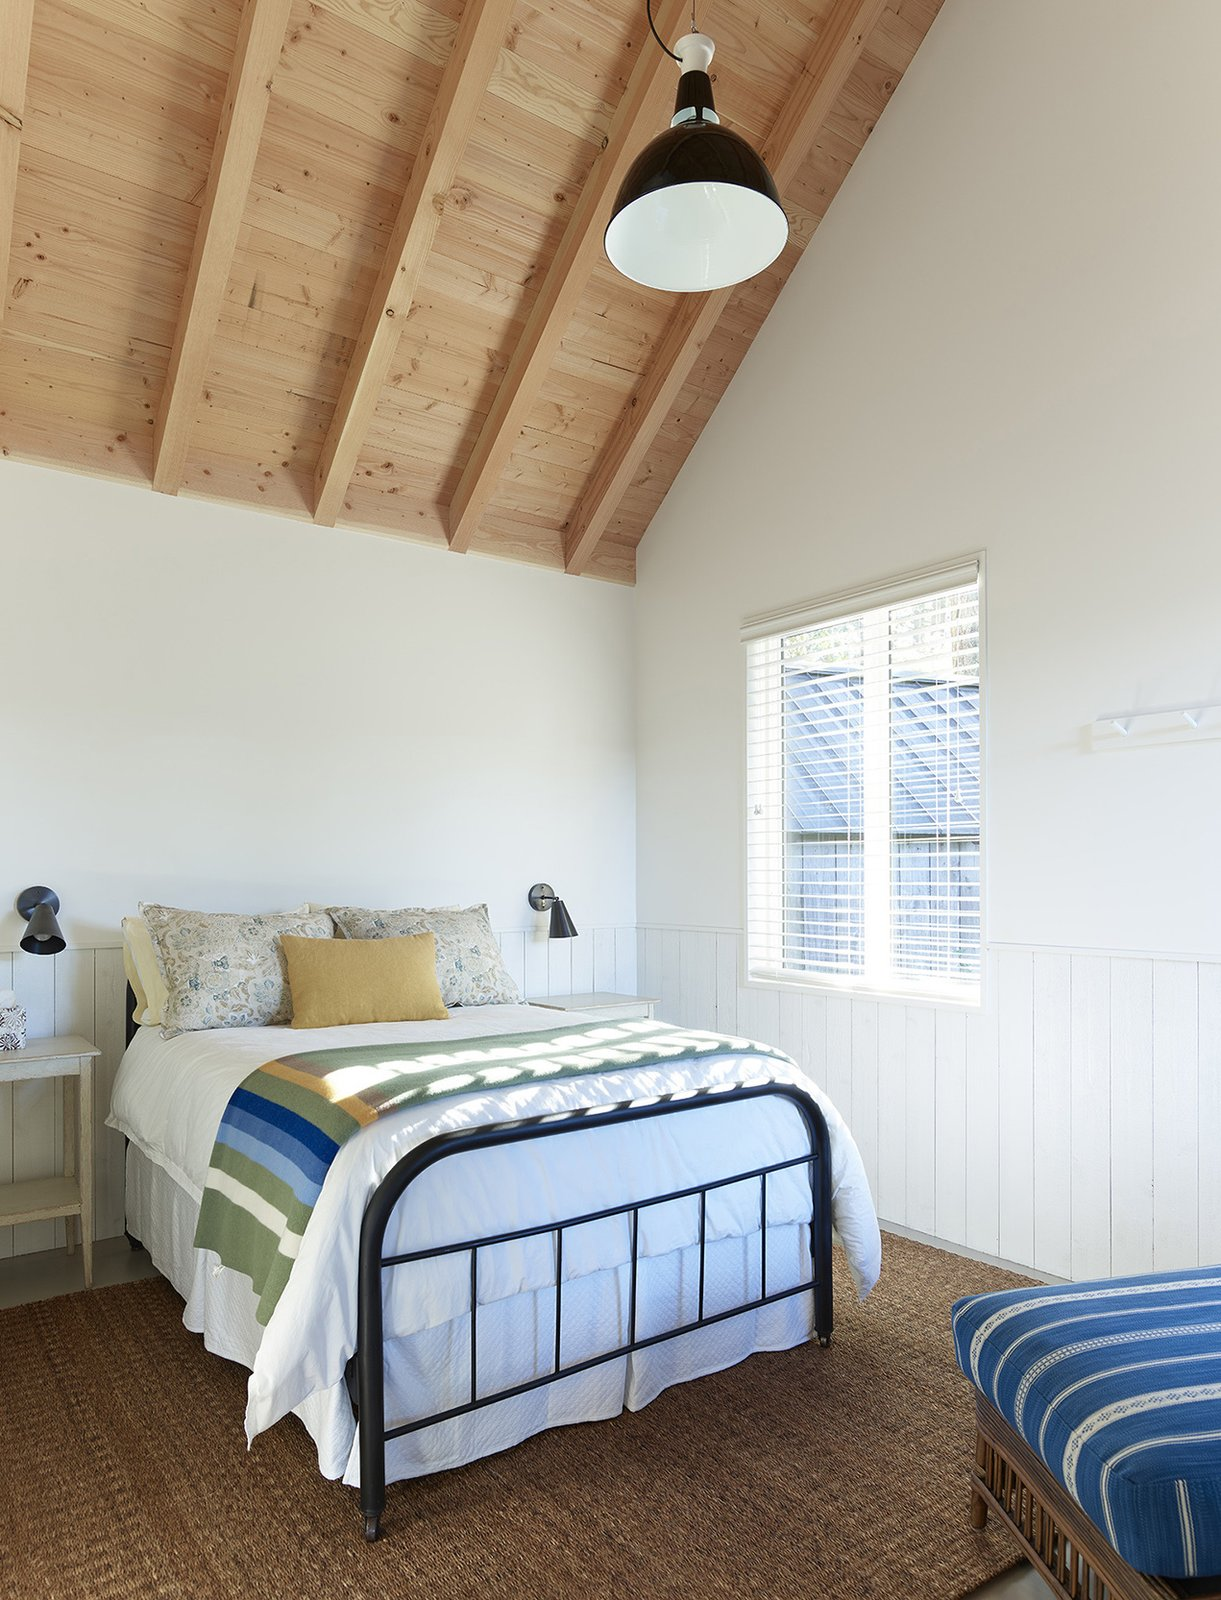 Bedroom, Night Stands, Chair, Wall, Painted Wood, and Bed Sleeping Cabin guest bedroom.  Bedroom Wall Bed Painted Wood Photos from Island Cabins